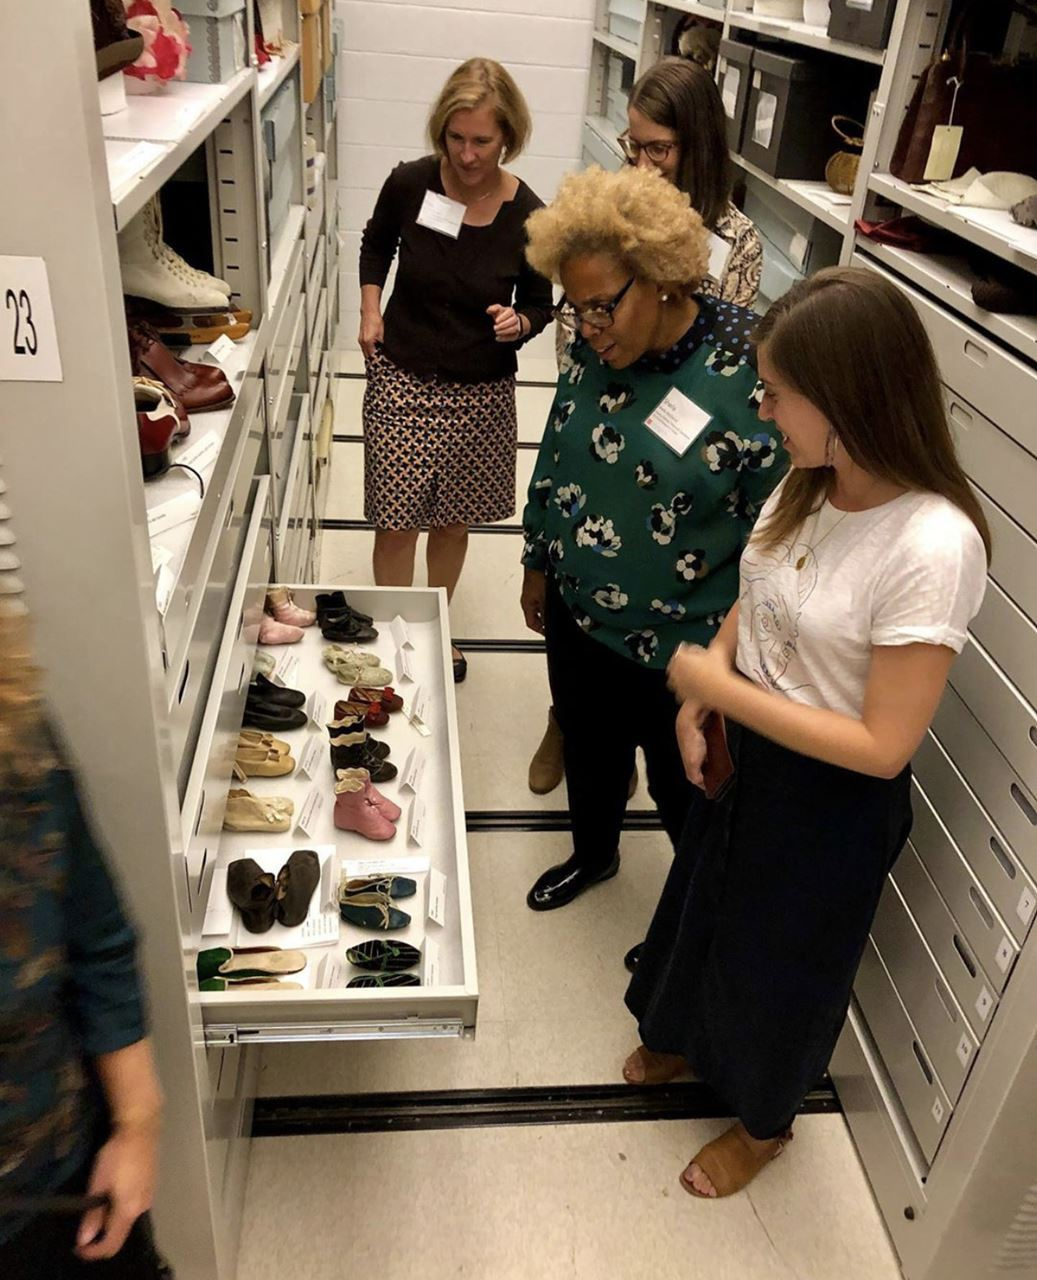 Thank you to the @albanyinstitute for hosting our October MANY Board Meeting and to CuratorMANY Board Member Diane Shewchuk for a look behind the scenes at the collections storage and of the Schuyler Sisters exhibition!